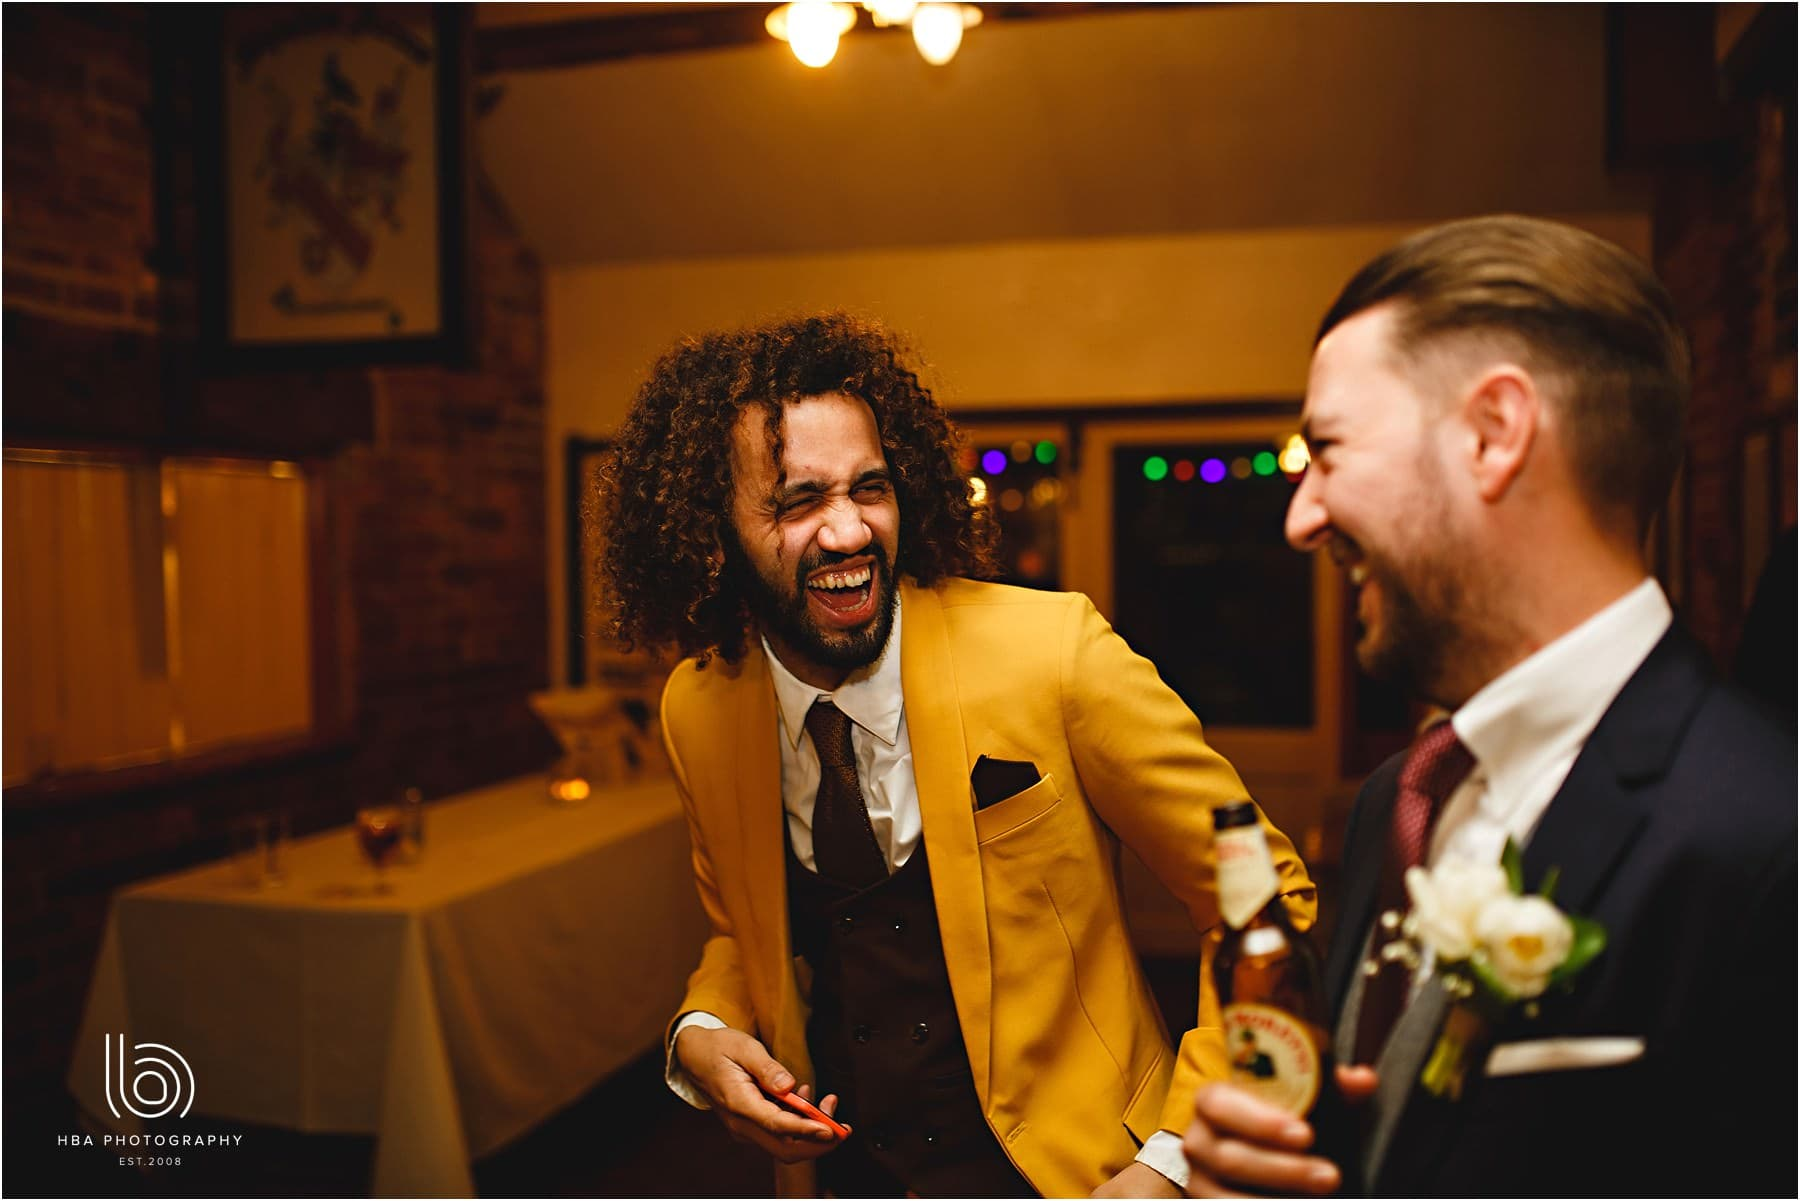 Wedding guest in a yellow suit having fun and laughing